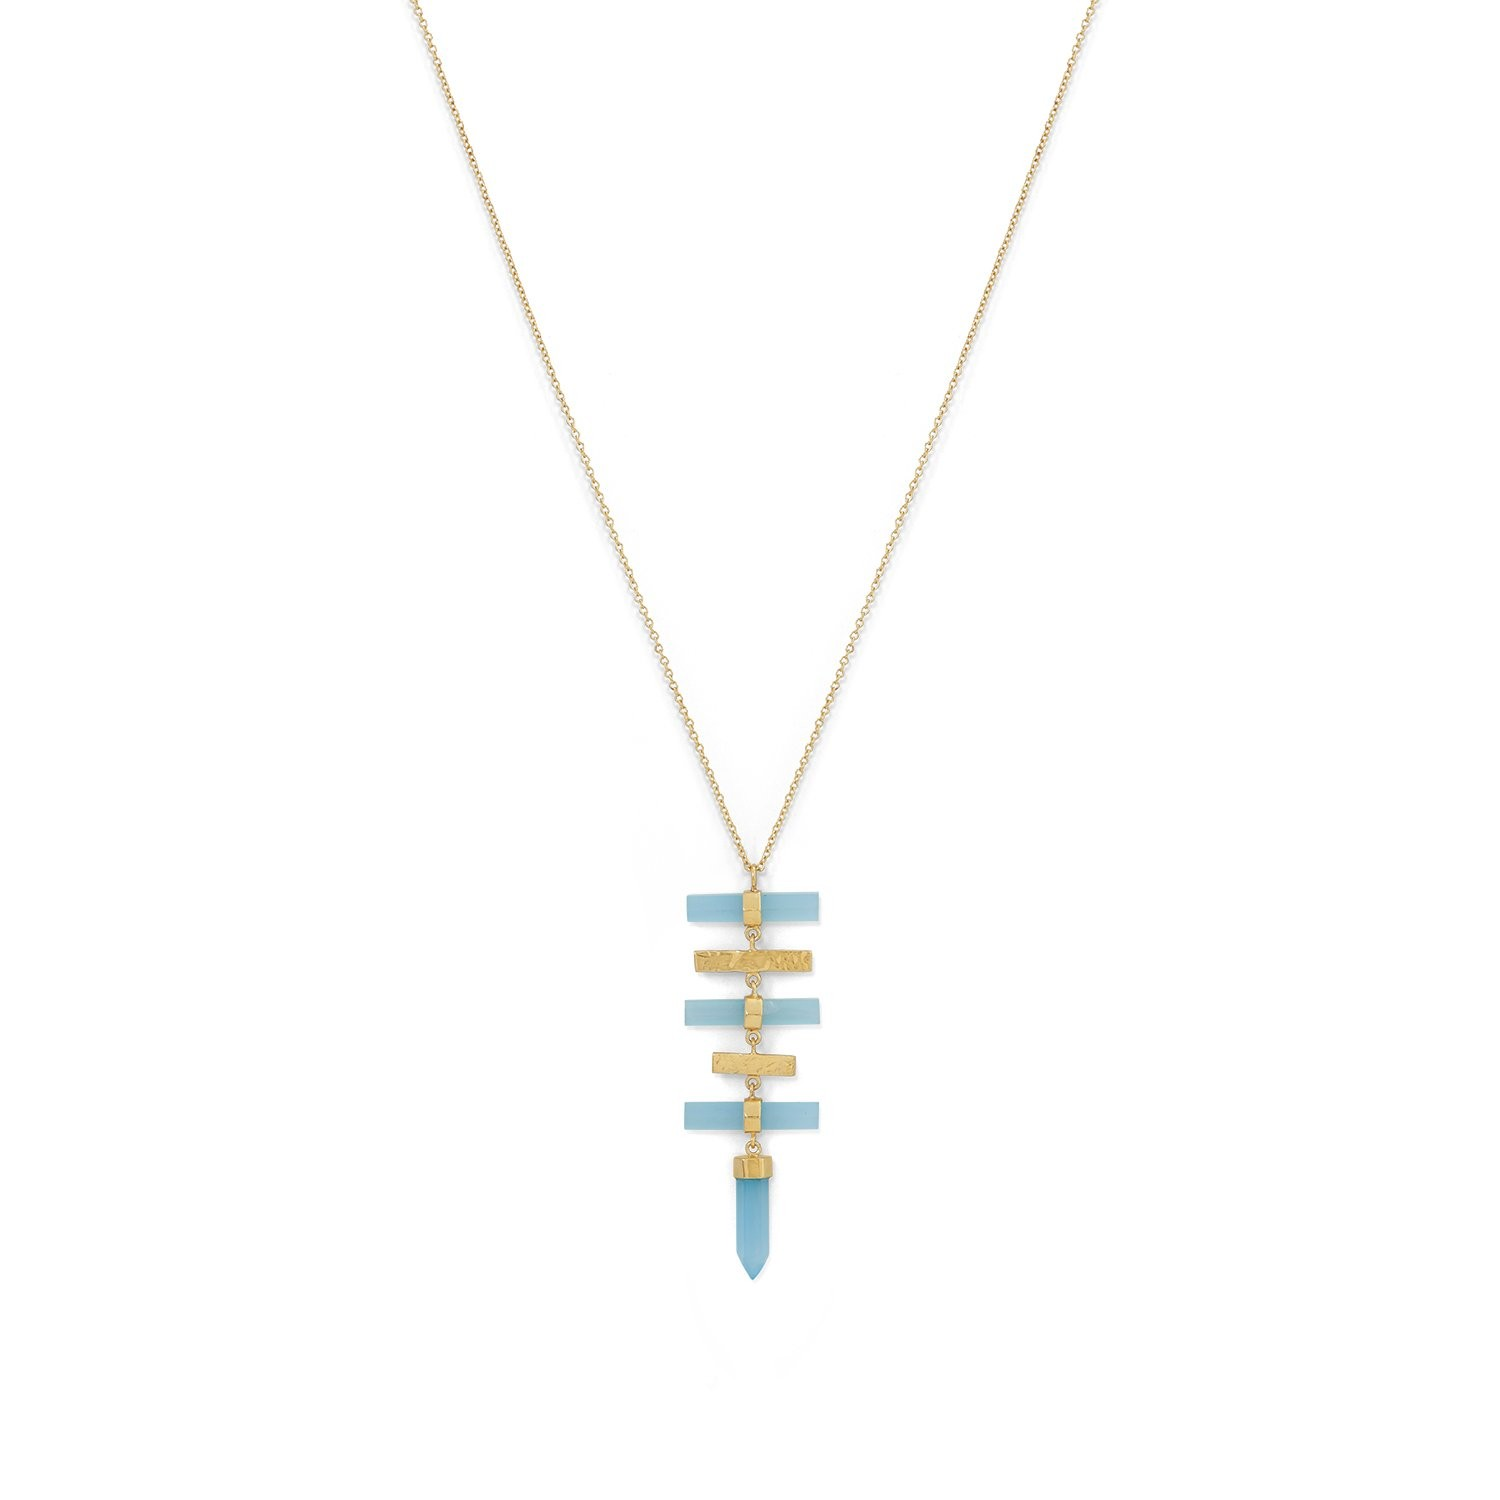 Lake Leelanau Necklace